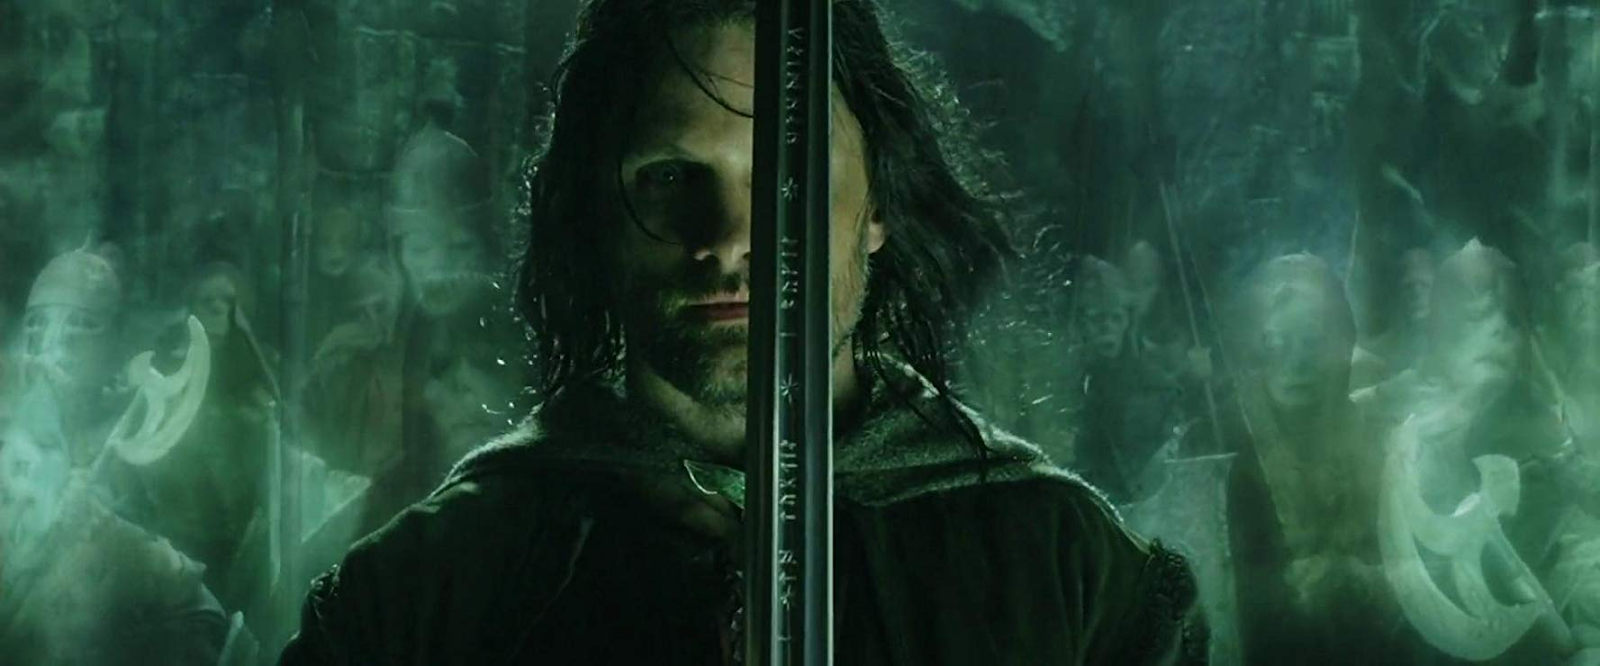 "IMDb. ""Image 224 of 324. Viggo Mortensen in The Lord of the Rings: Return of the King (2003)."""